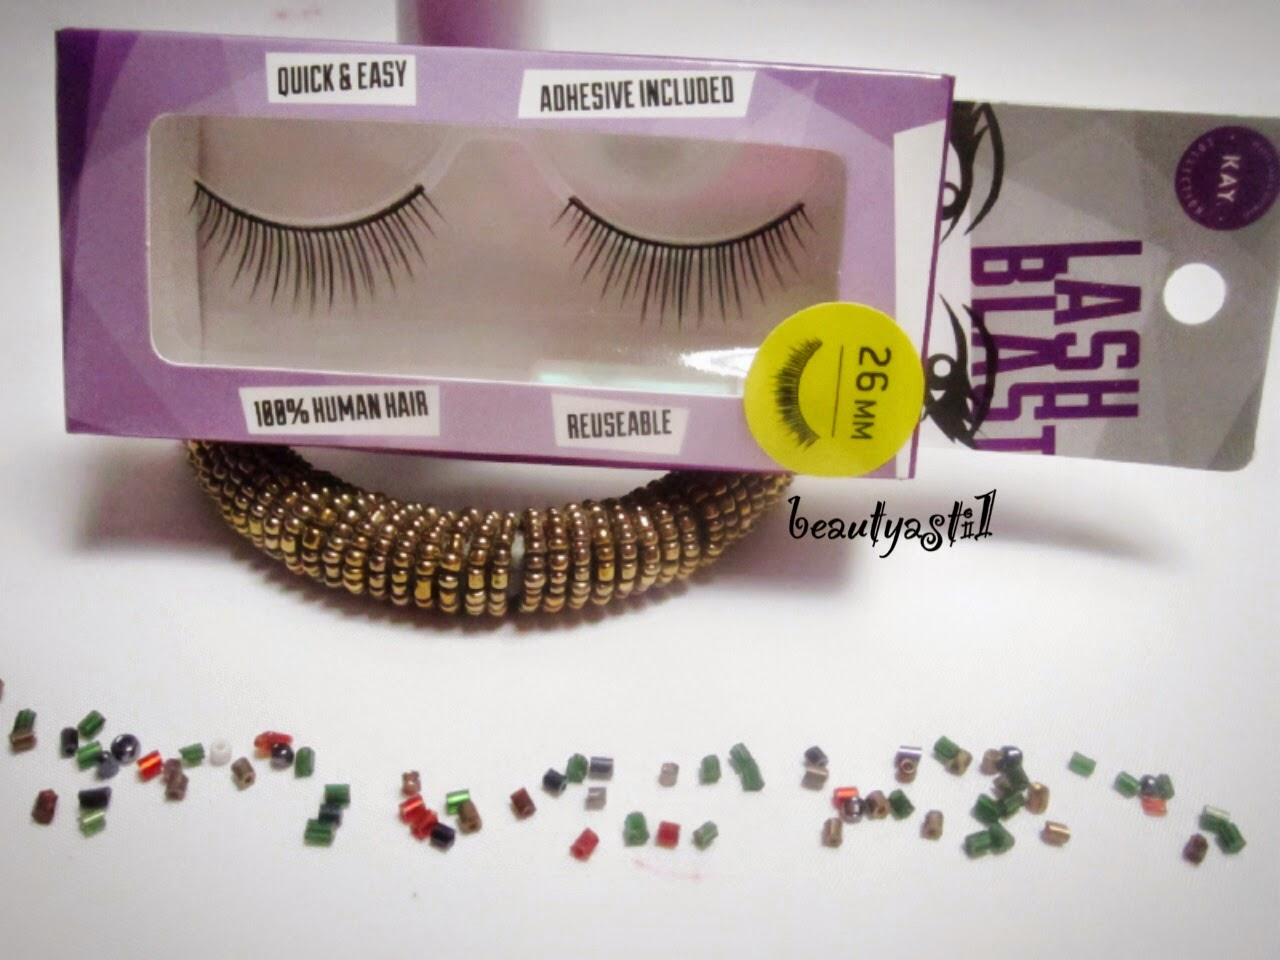 kay-collection-lash-blast-26mm-fake-eyelashes-review.jpg